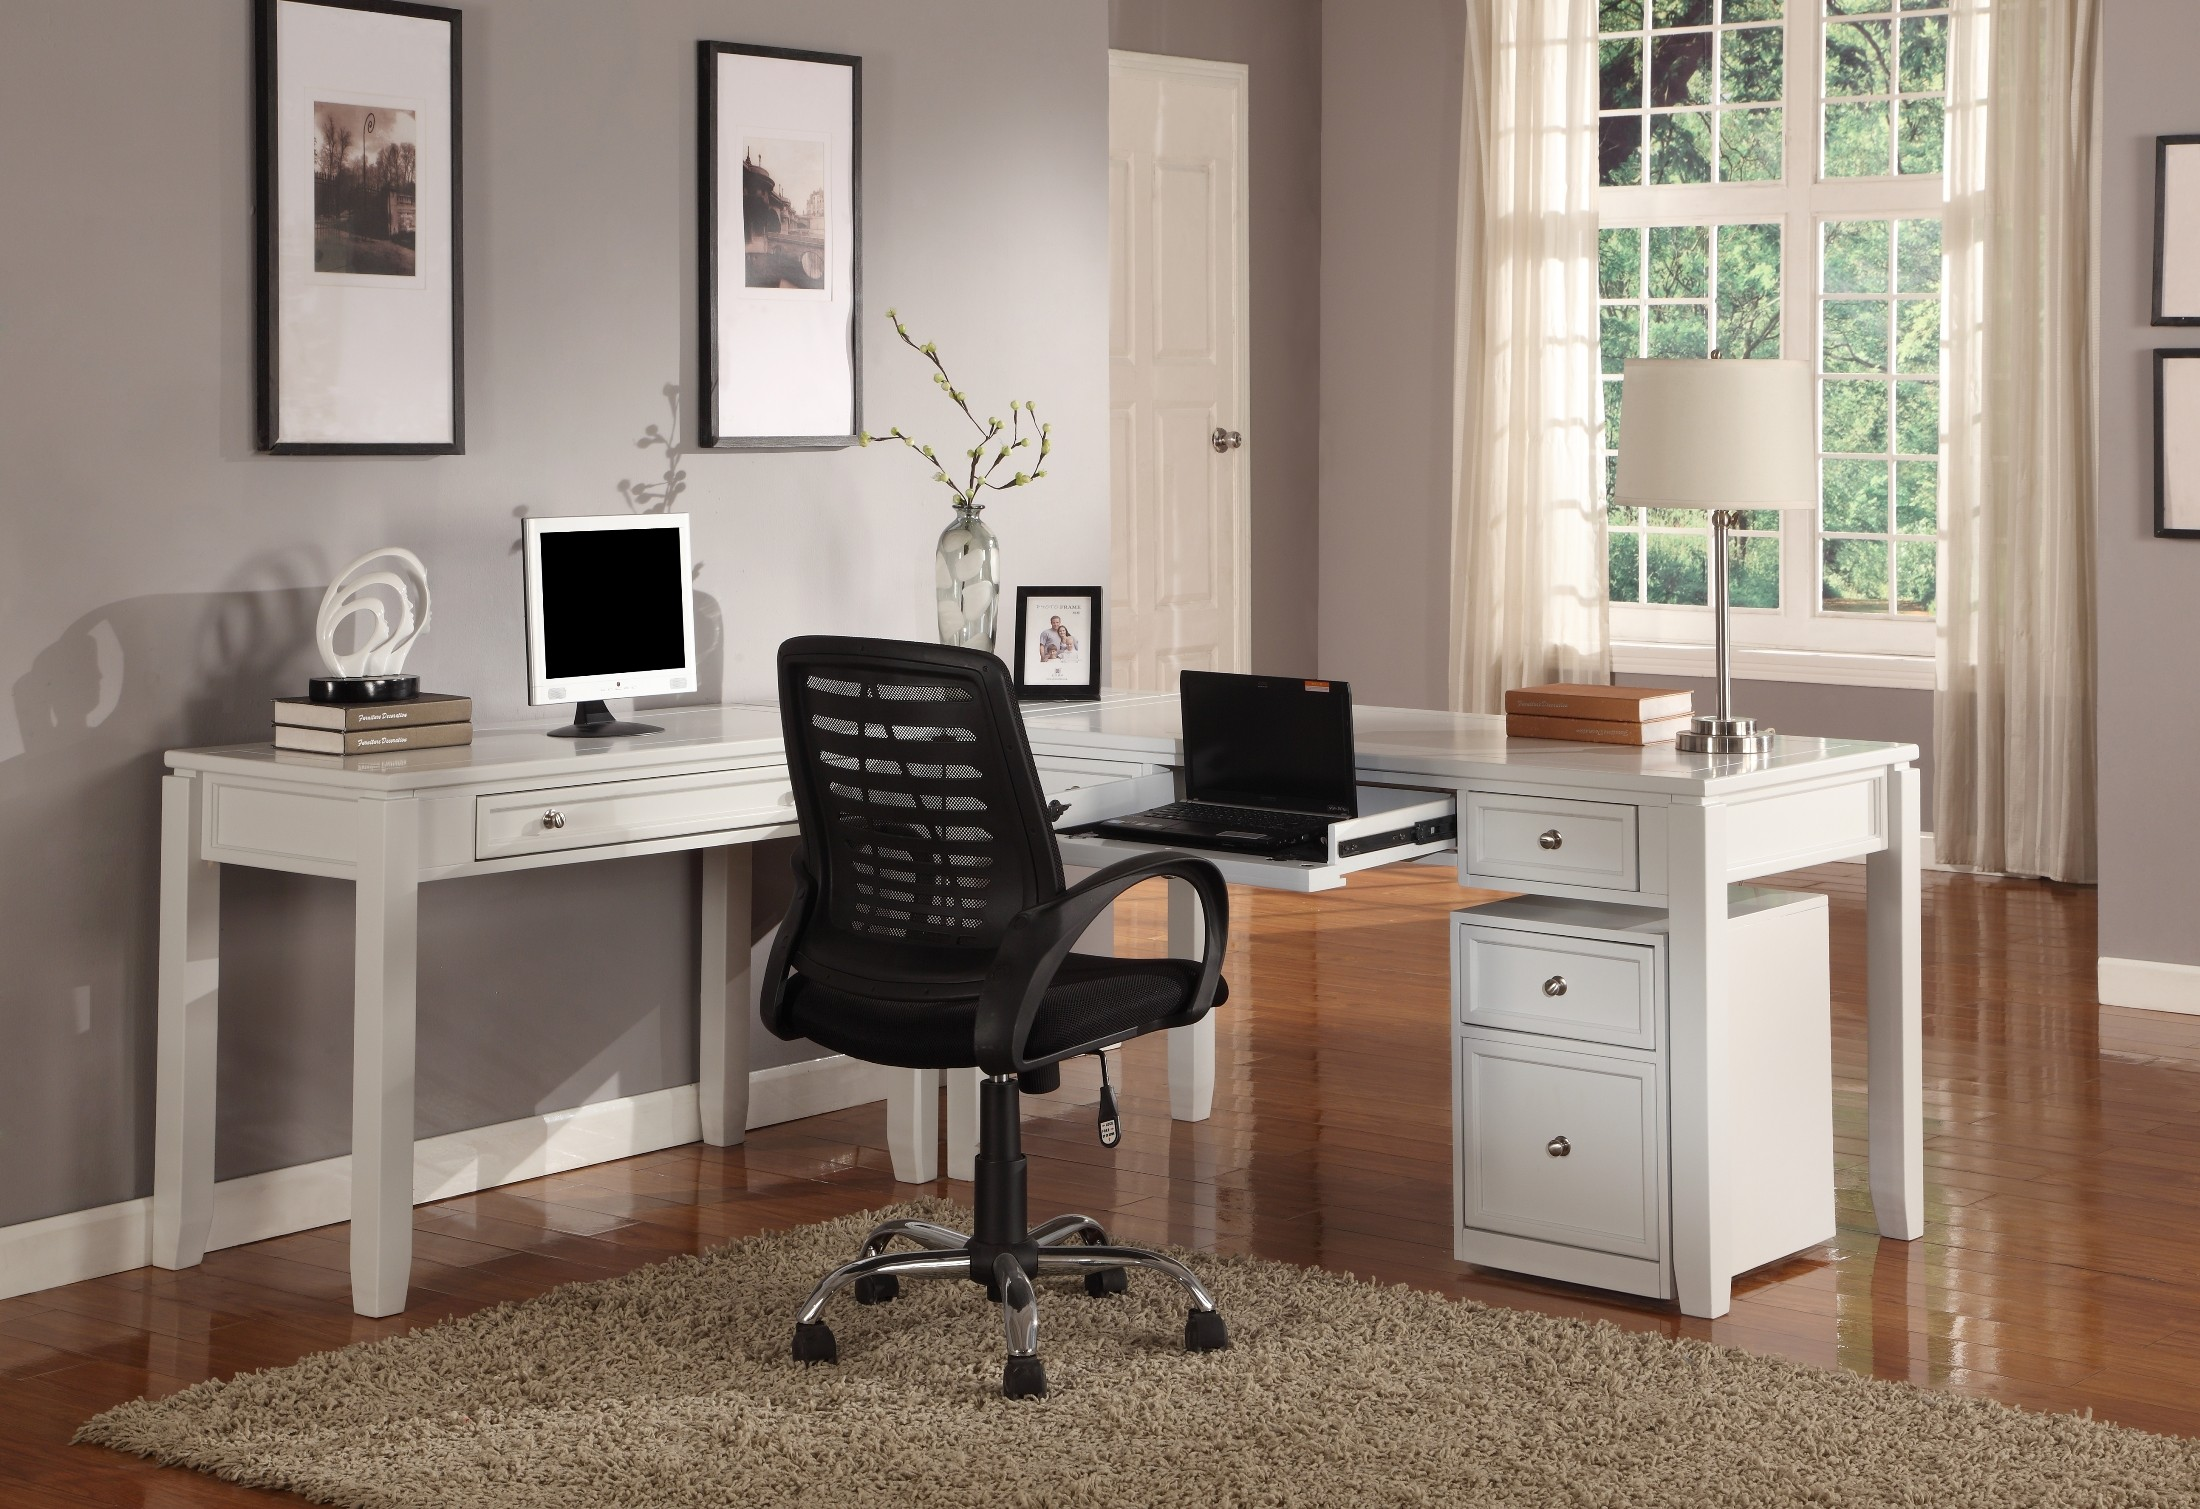 Buy shape home office Table Workstation Boca Lshape Home Office Set 385789 Cymax Boca Lshape Home Office Set From Parker House boc347d2370